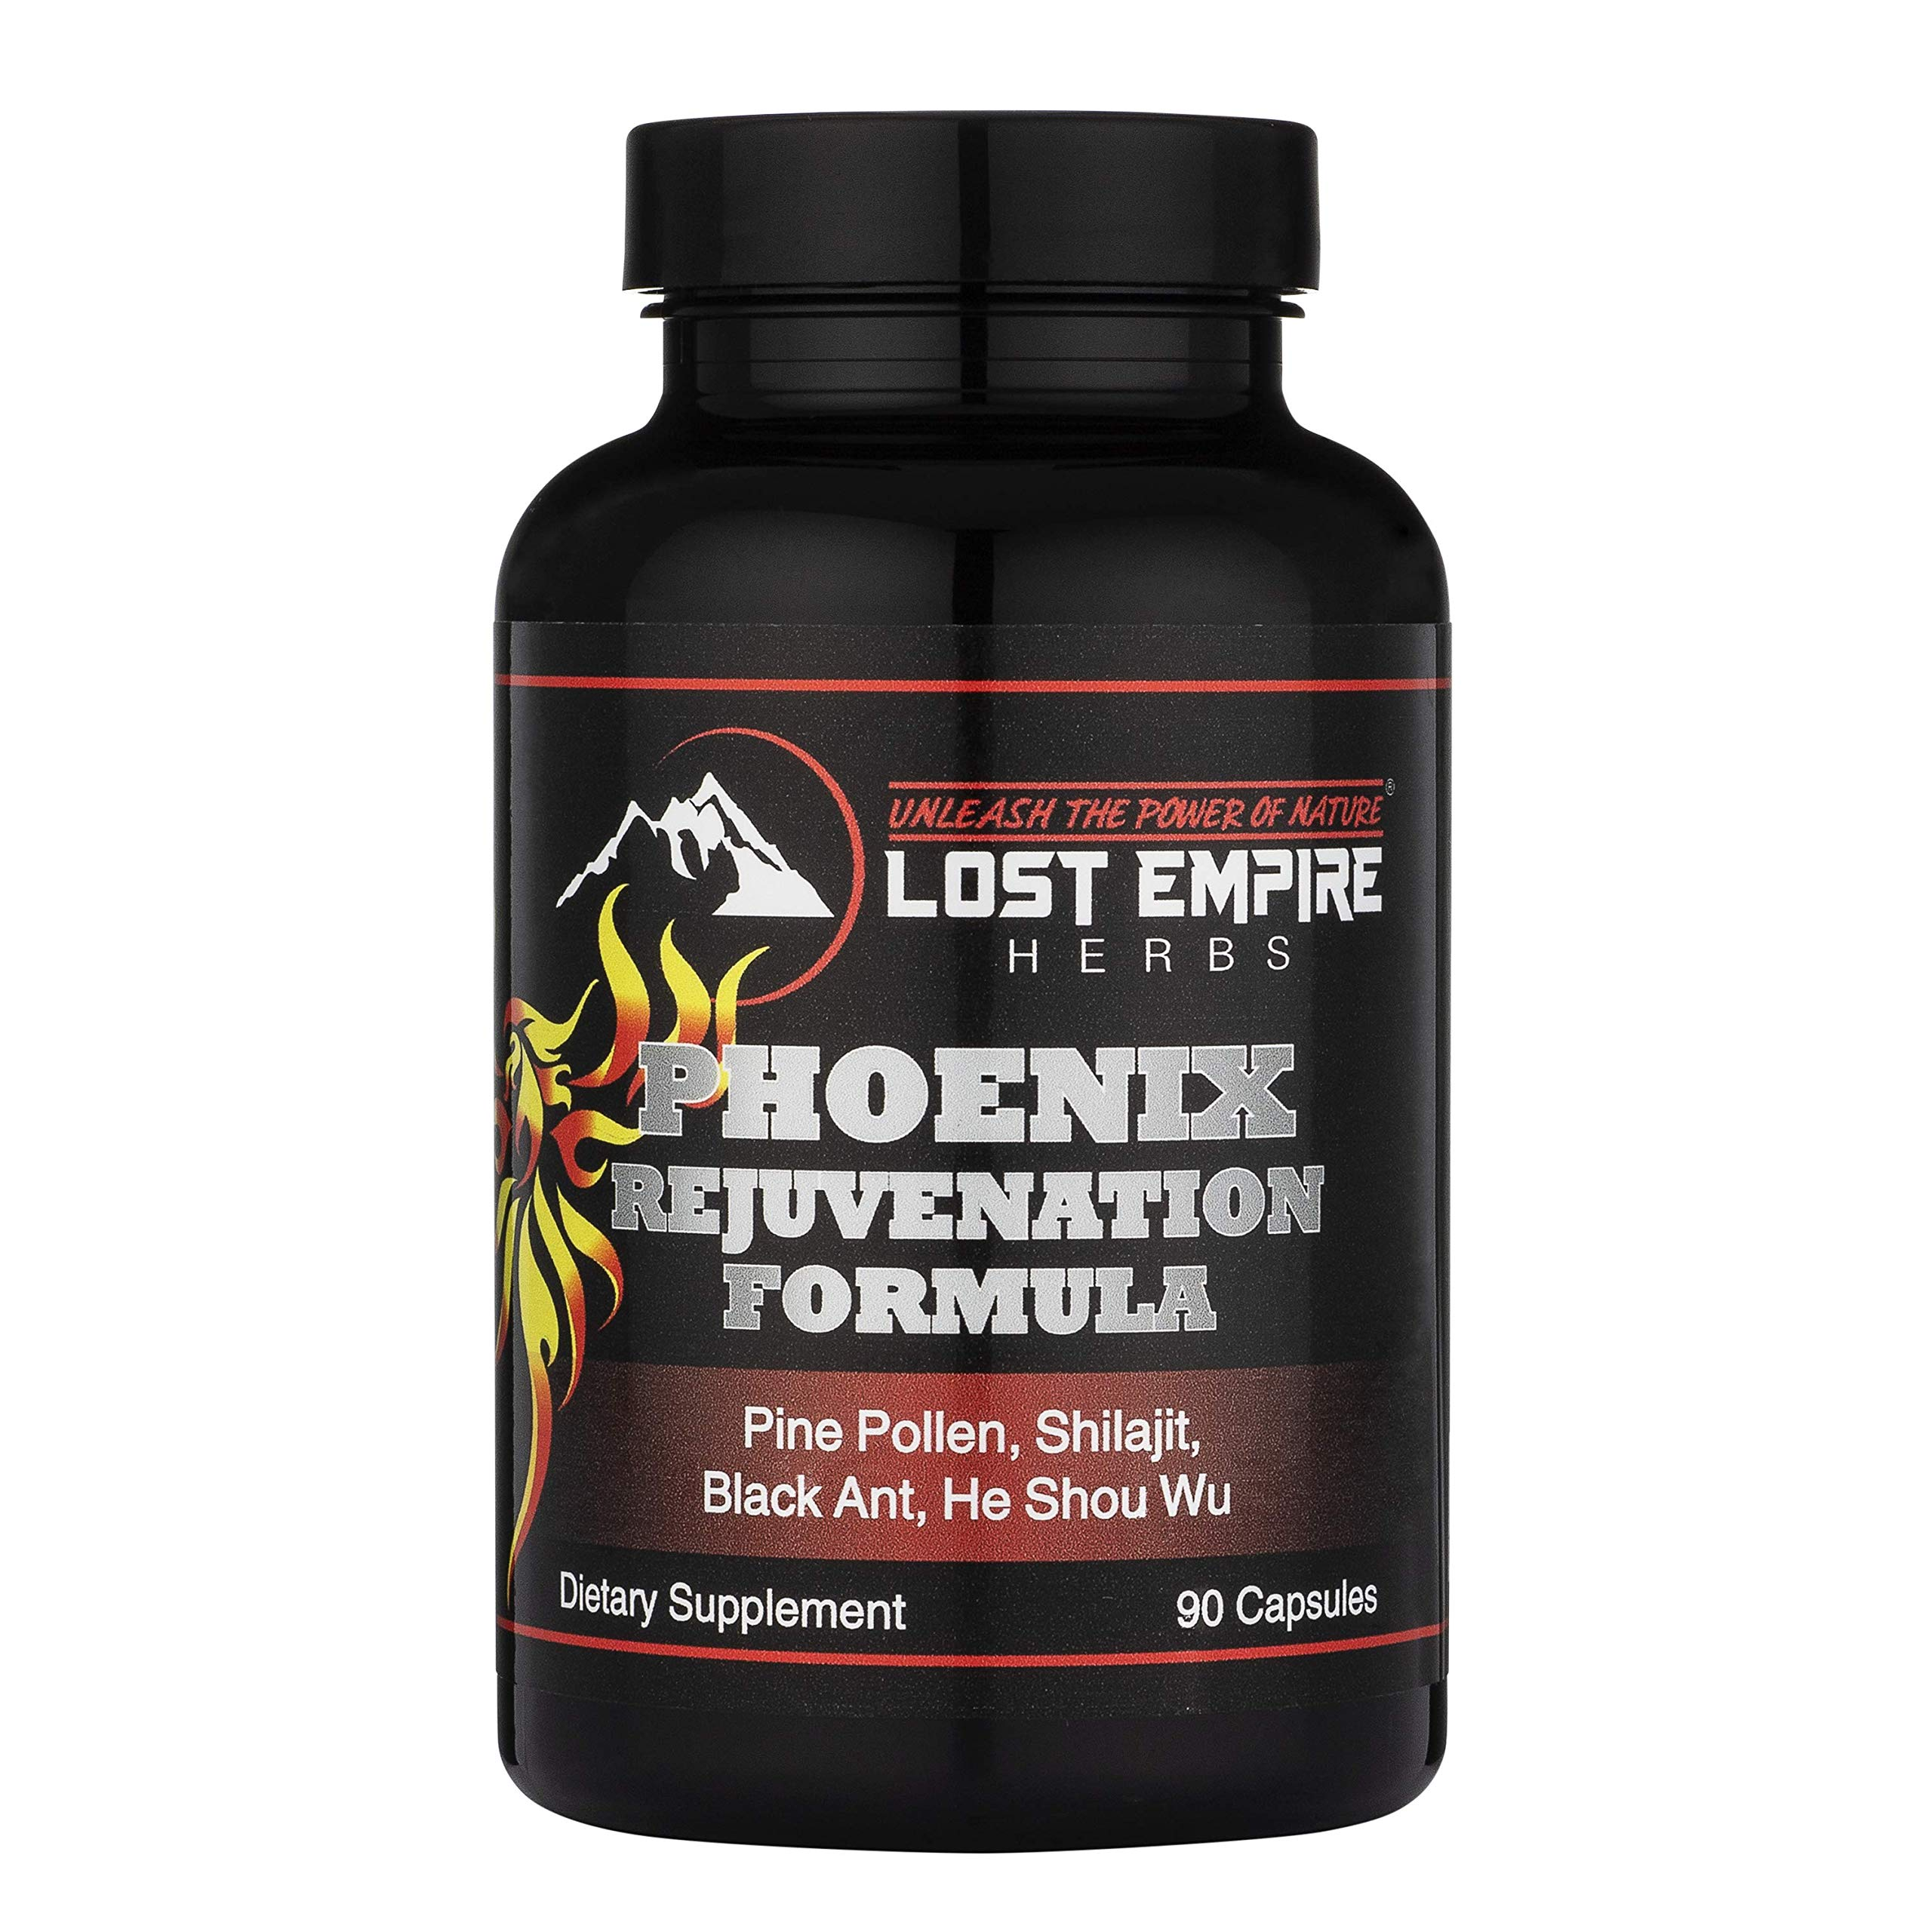 Phoenix Rejuvenation Formula (Capsules 90 Count) Discover Ancient Herbs in a New, Modern Formula to Combat Physical and Mental Decline